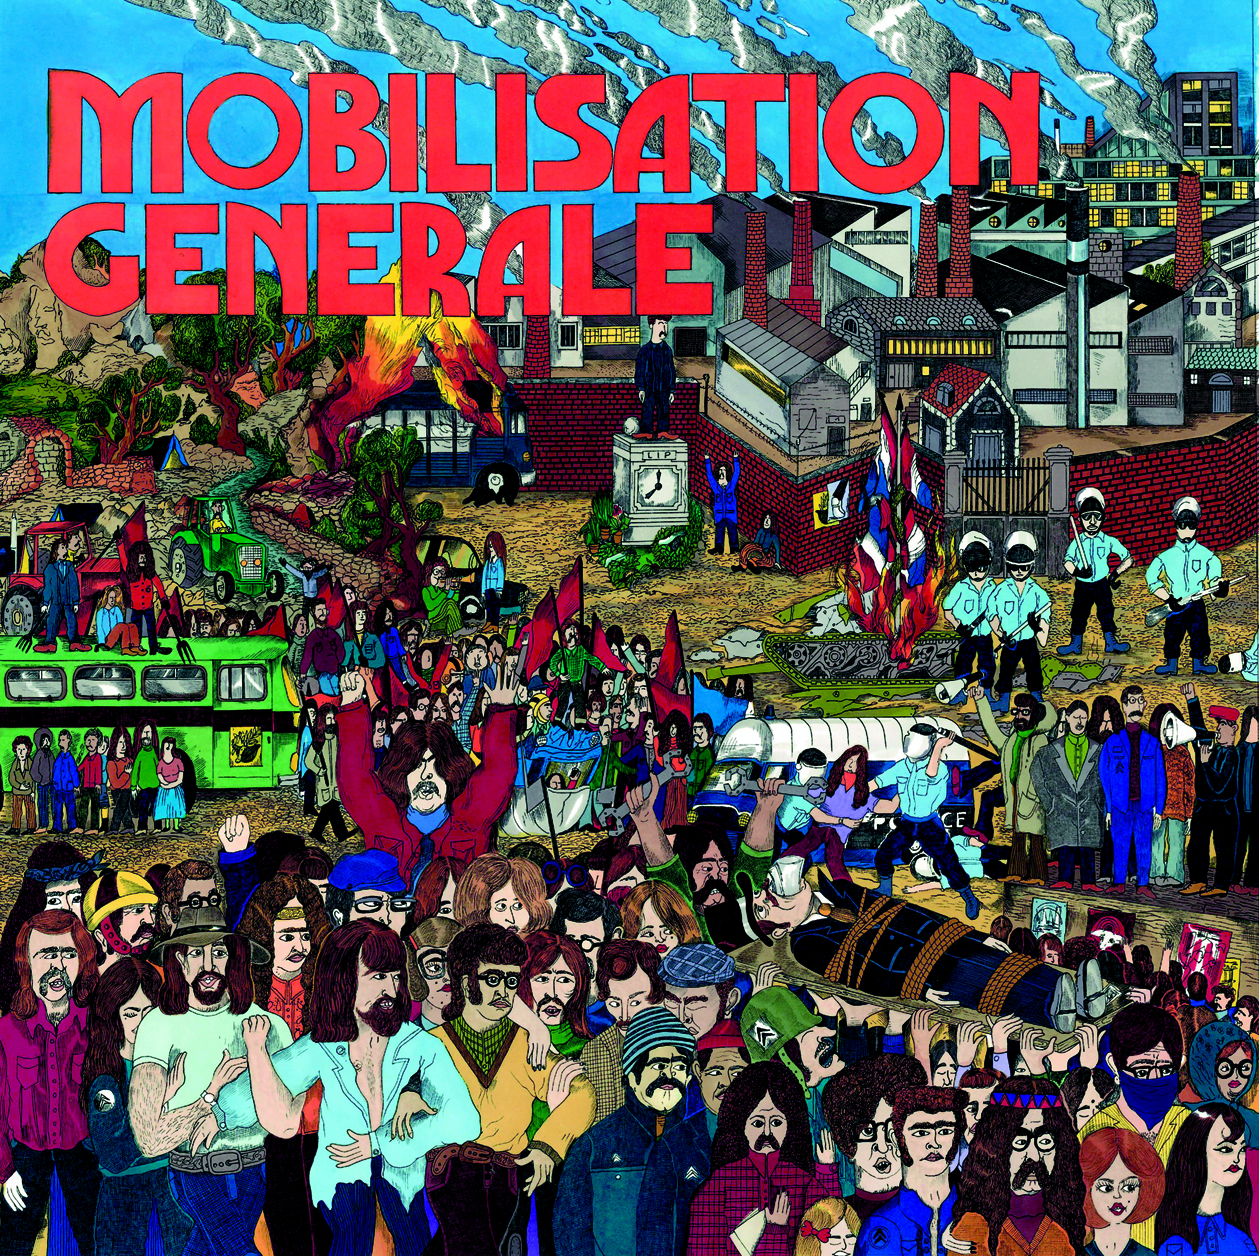 "Protest & Spirit Jazz from France 1970-1976  NEW  Mobilisation Générale (Born Bad Records) 2013, France  EXCLUSIVE PRE-ORDER. We are very proud to announce the release of ""Mobilisation Générale"" : Protest & Spirit Jazz from France 1970-1976, our (fully licensed) new jazz compilation in collaboration with Born Bad Records. This time, we have gathered some fine protest & esoteric jazz songs featuring a few big names of the french jazz scene and also a few tunes that you have probably never heard. Double lps album including : Le Collectif du Temps des Cerises, Baroque Jazz Trio, Alfred Panou, Mahjun, François Tusques, Full Moon Ensemble, Chêne Noir, Areski Belkacem & more ... Pre-order only at Diggersdigest before the official release on mid December."